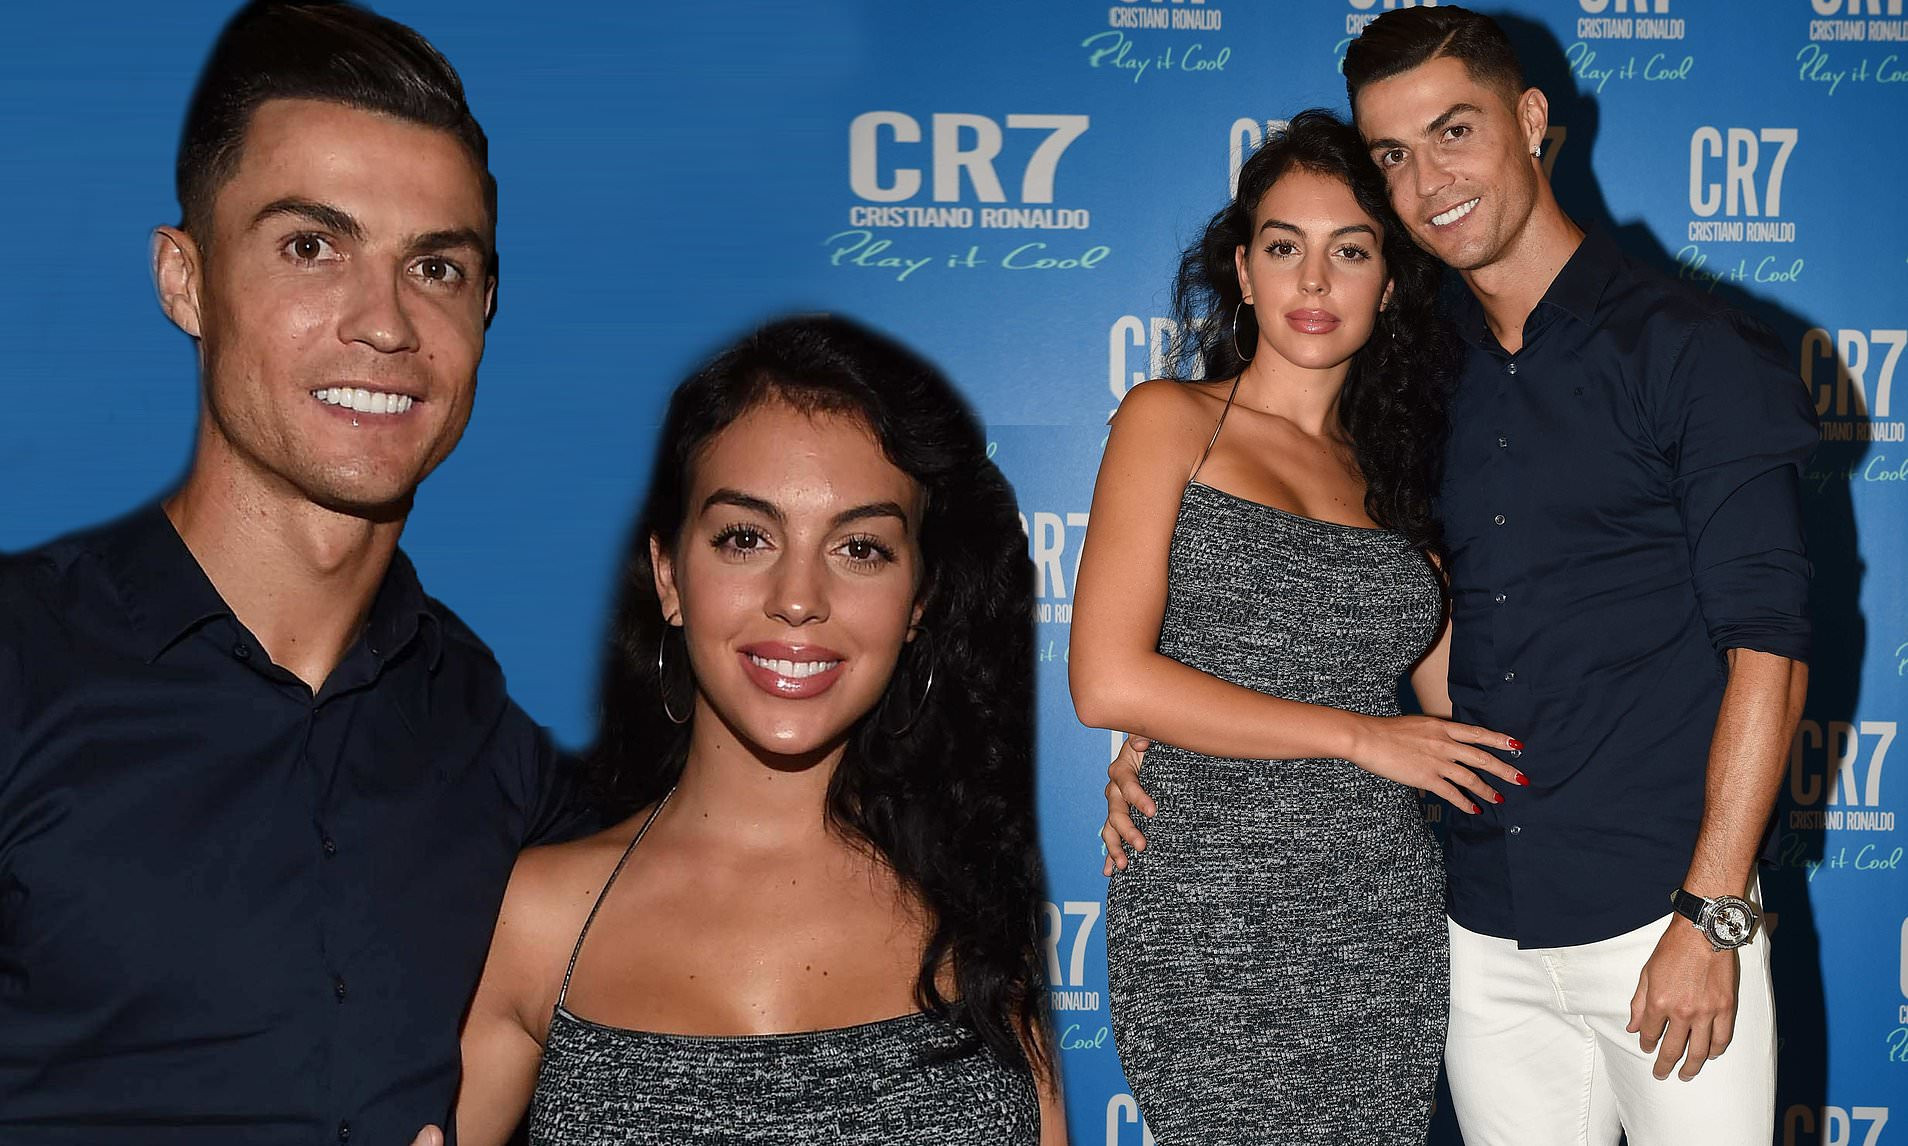 Cristiano Ronaldo hits back at claims he secretly married his girlfriend Georgina Rodr?guez in Morocco